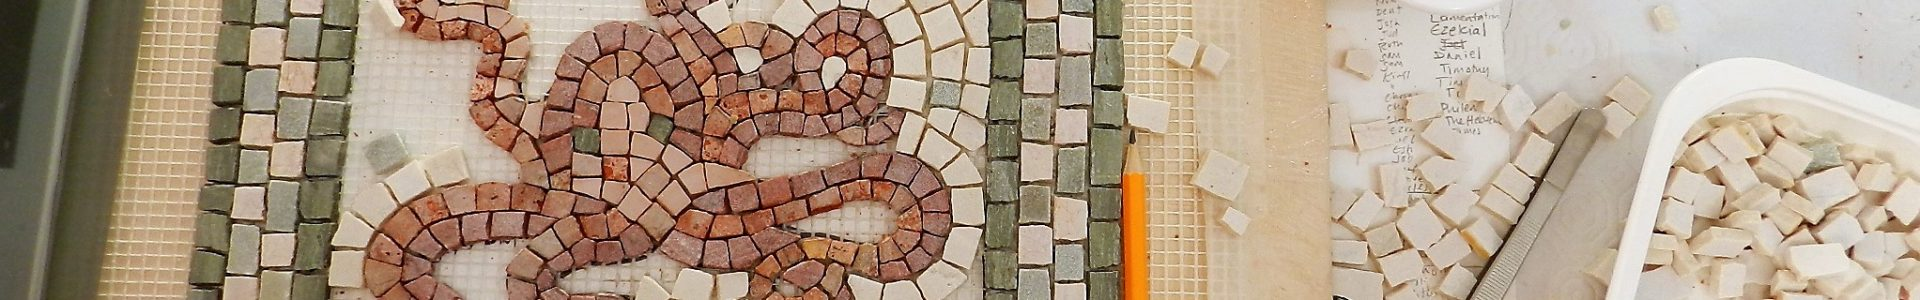 Six day mosaic course in Greece, 2018